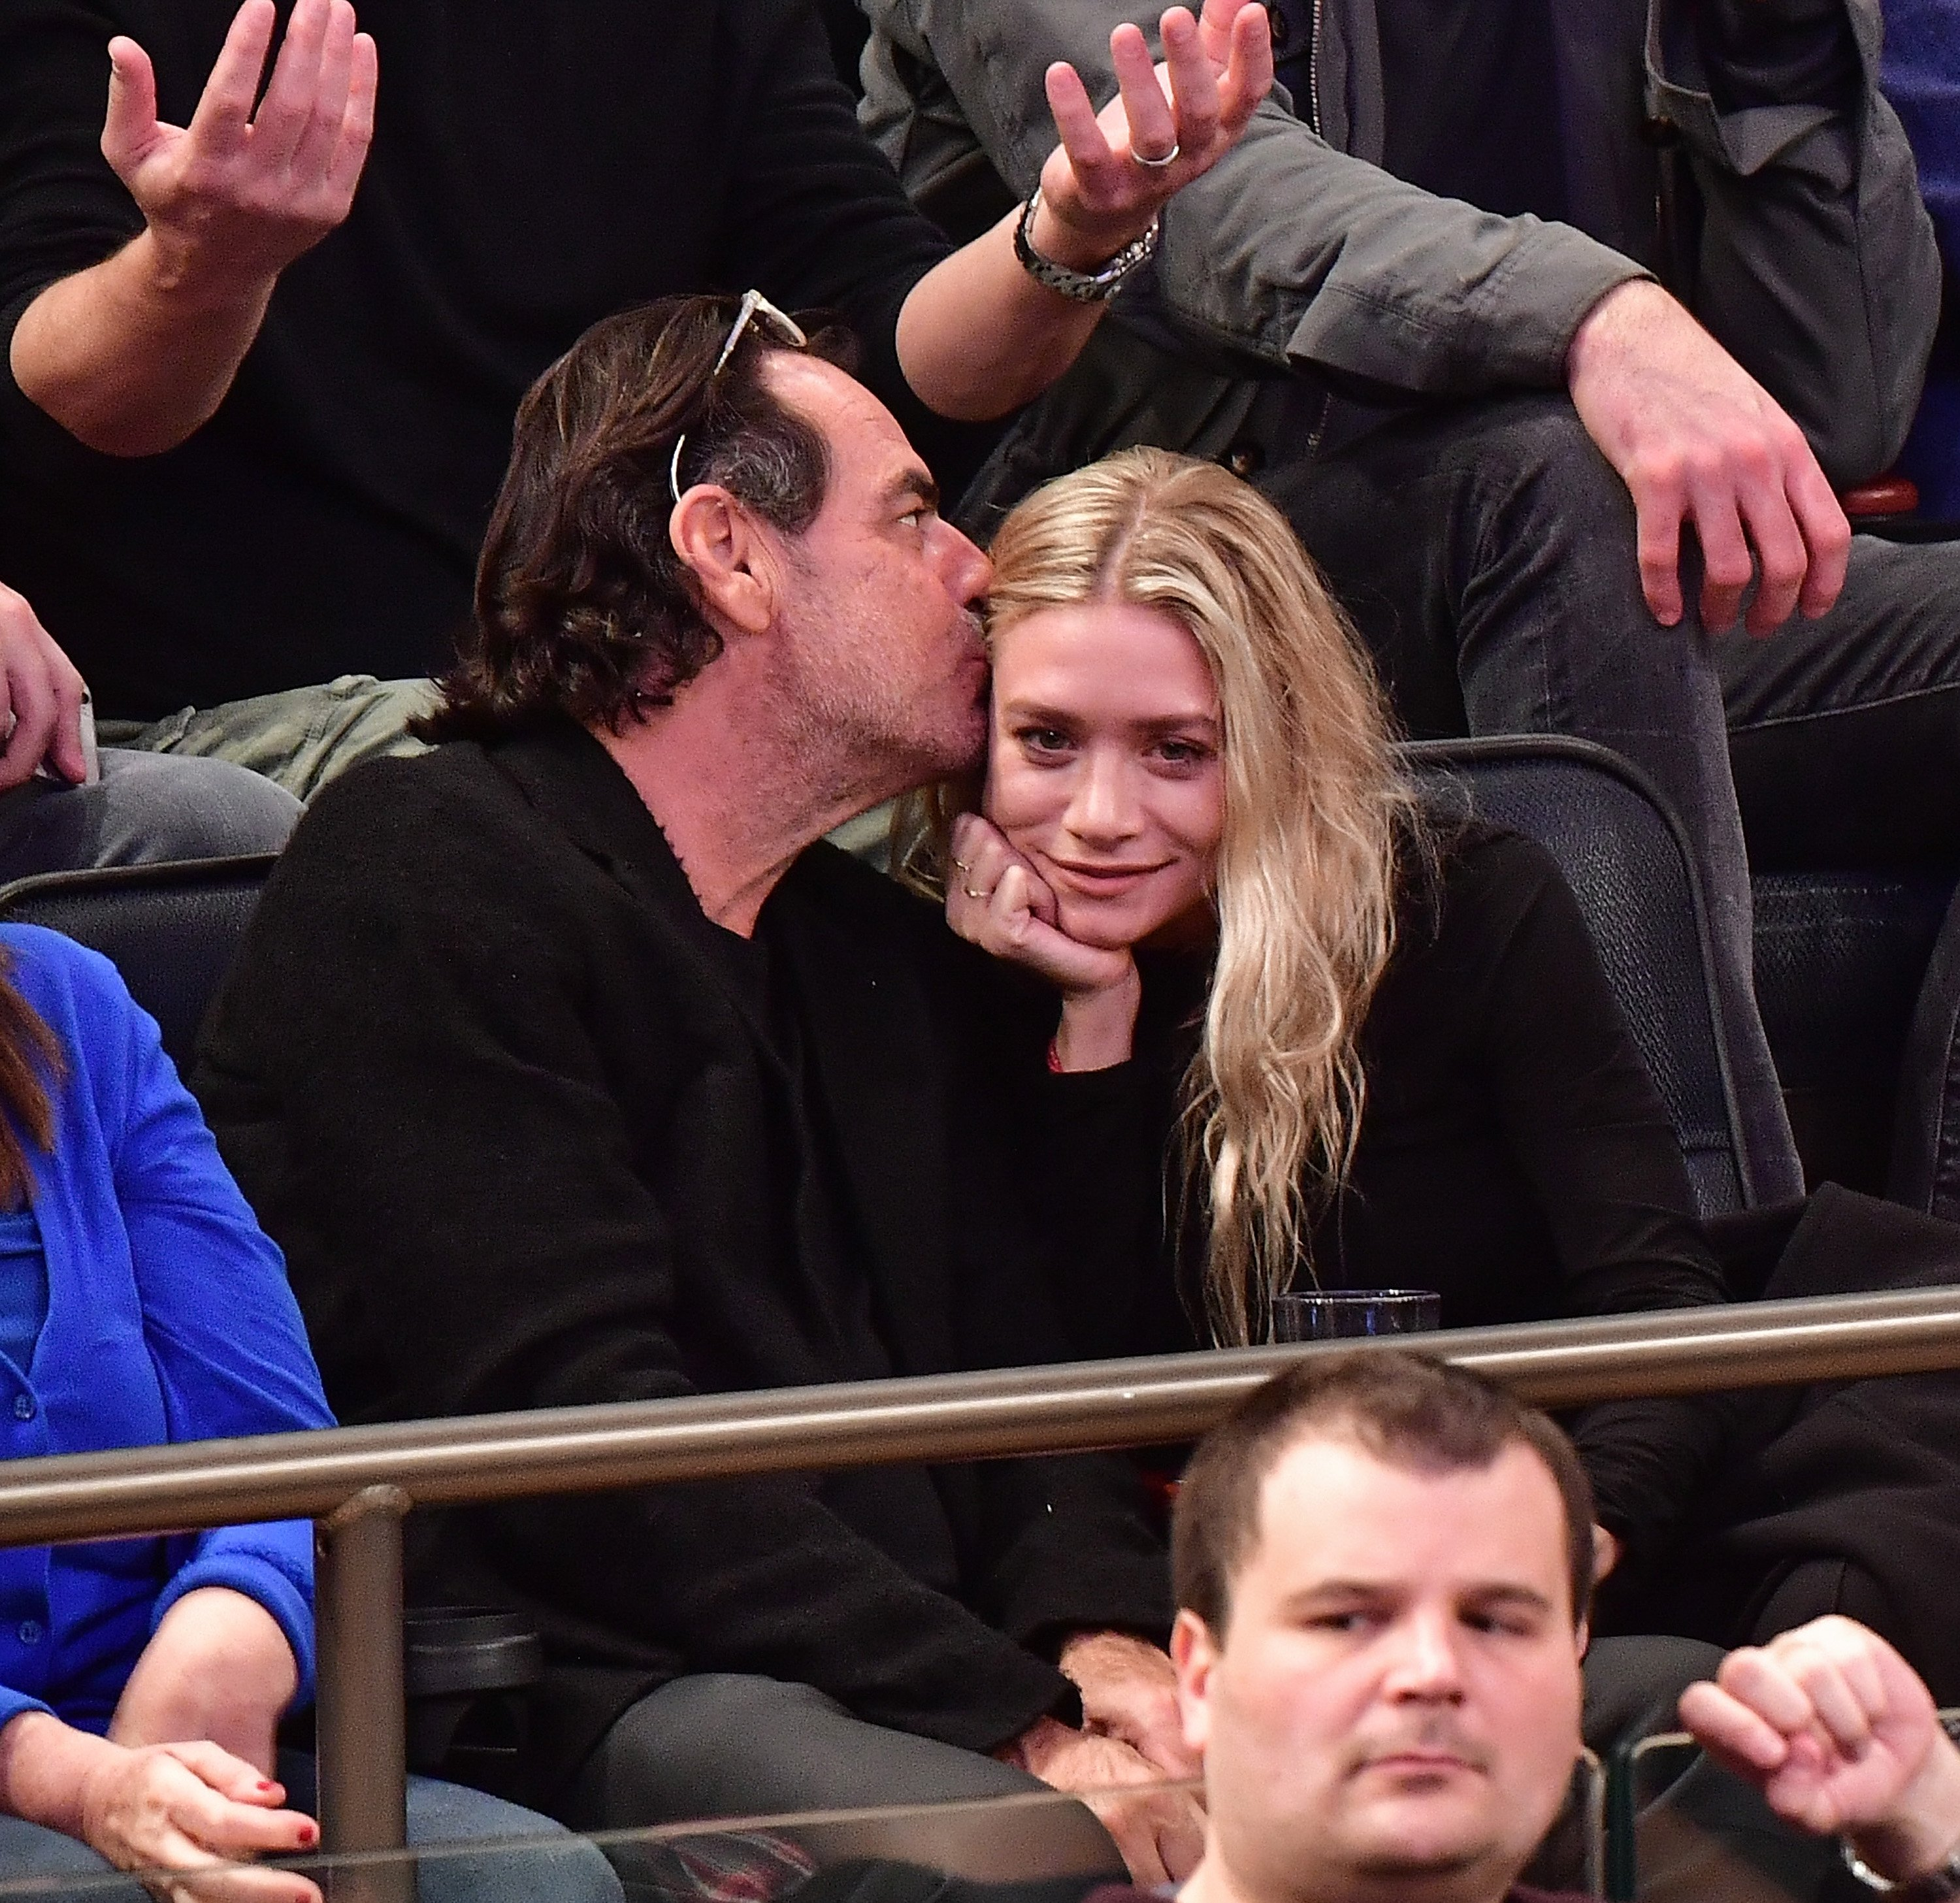 Ashley Olsen and Richard Sachs attend New York Knicks vs Brooklyn Nets game at Madison Square Garden on November 9, 2016 in New York City